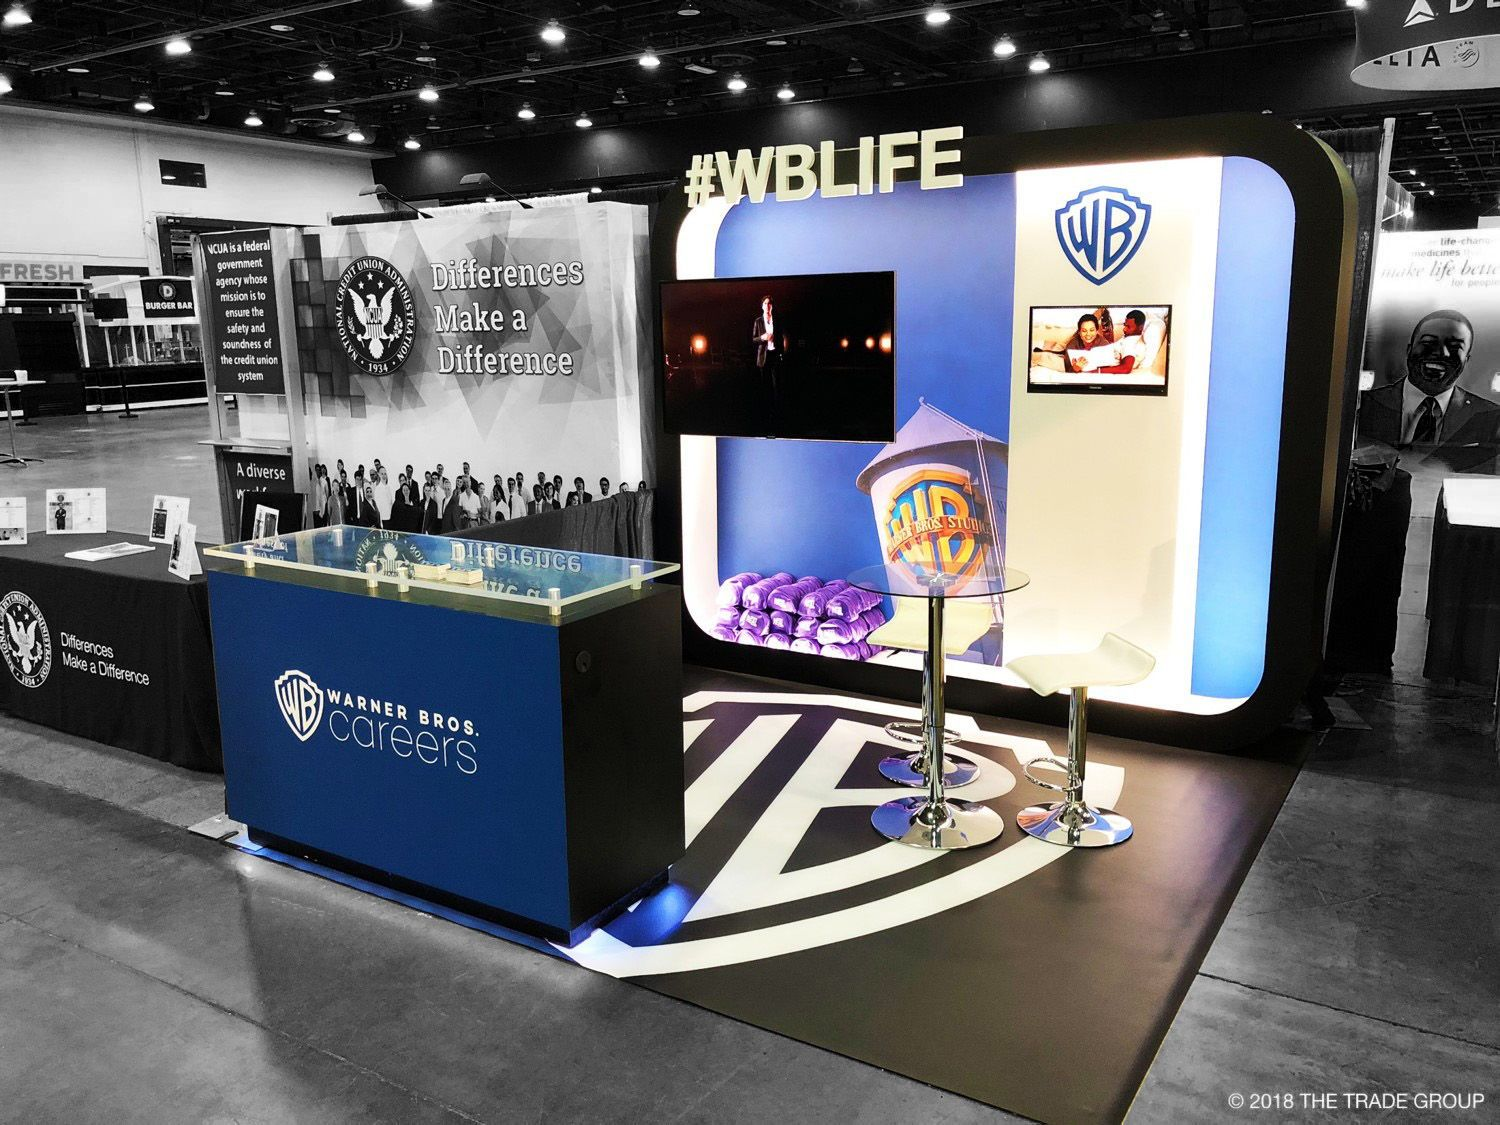 Exhibitor Warner Bros Interactive Entertainment A Division Of